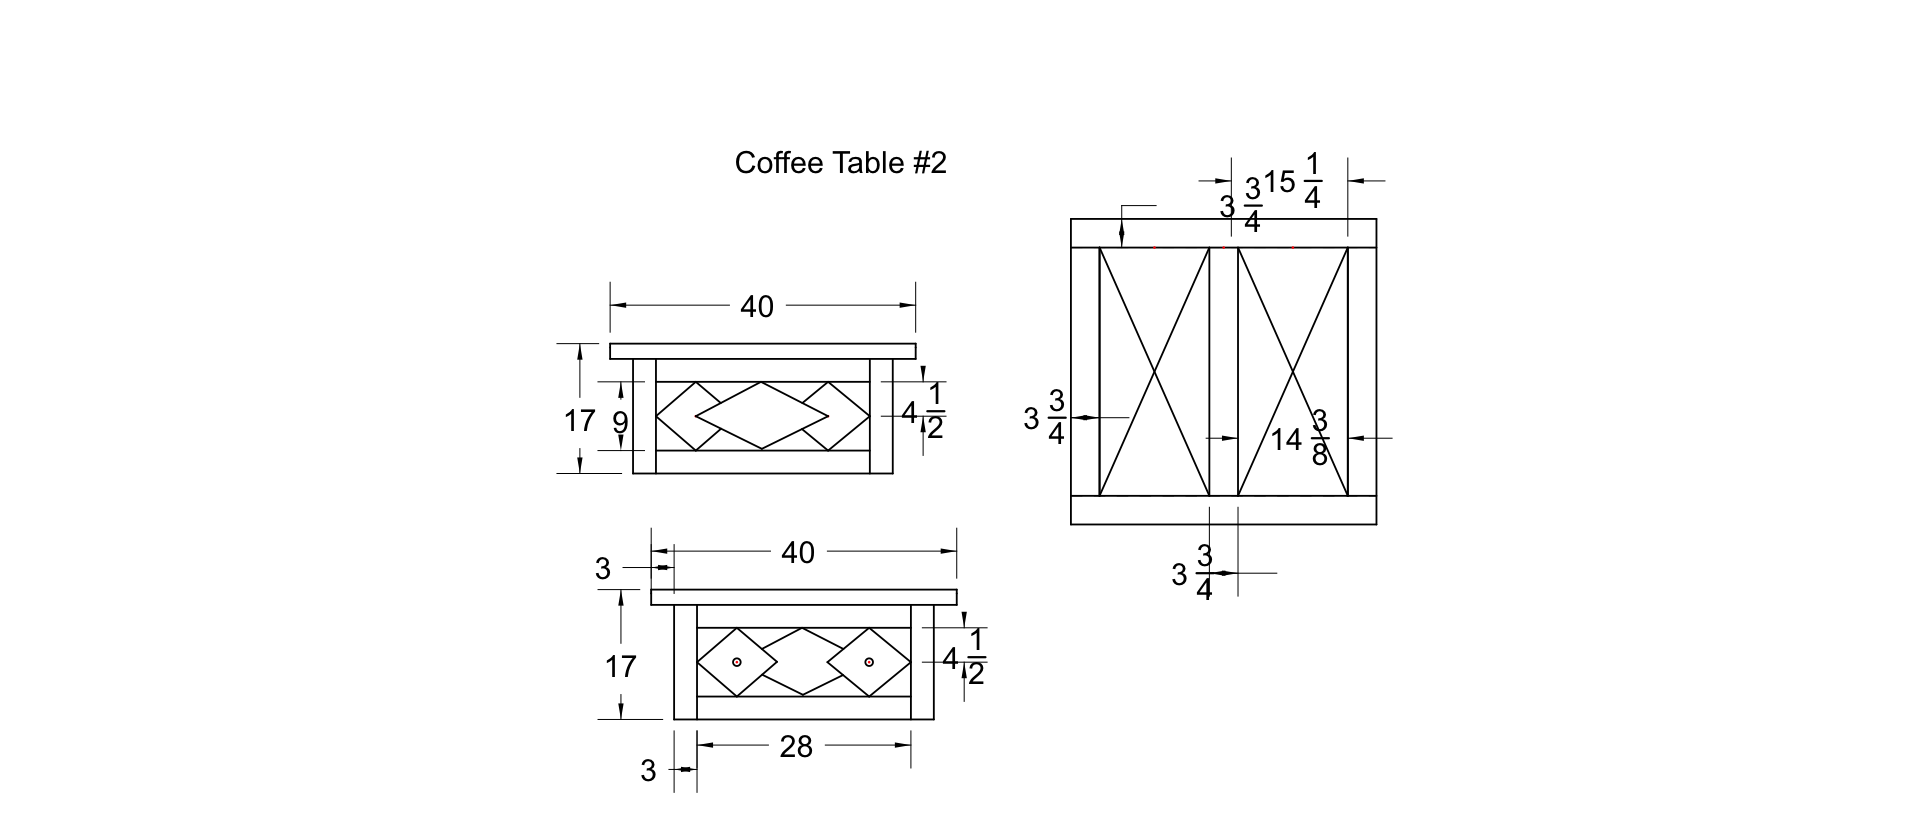 Coffee table #2.png